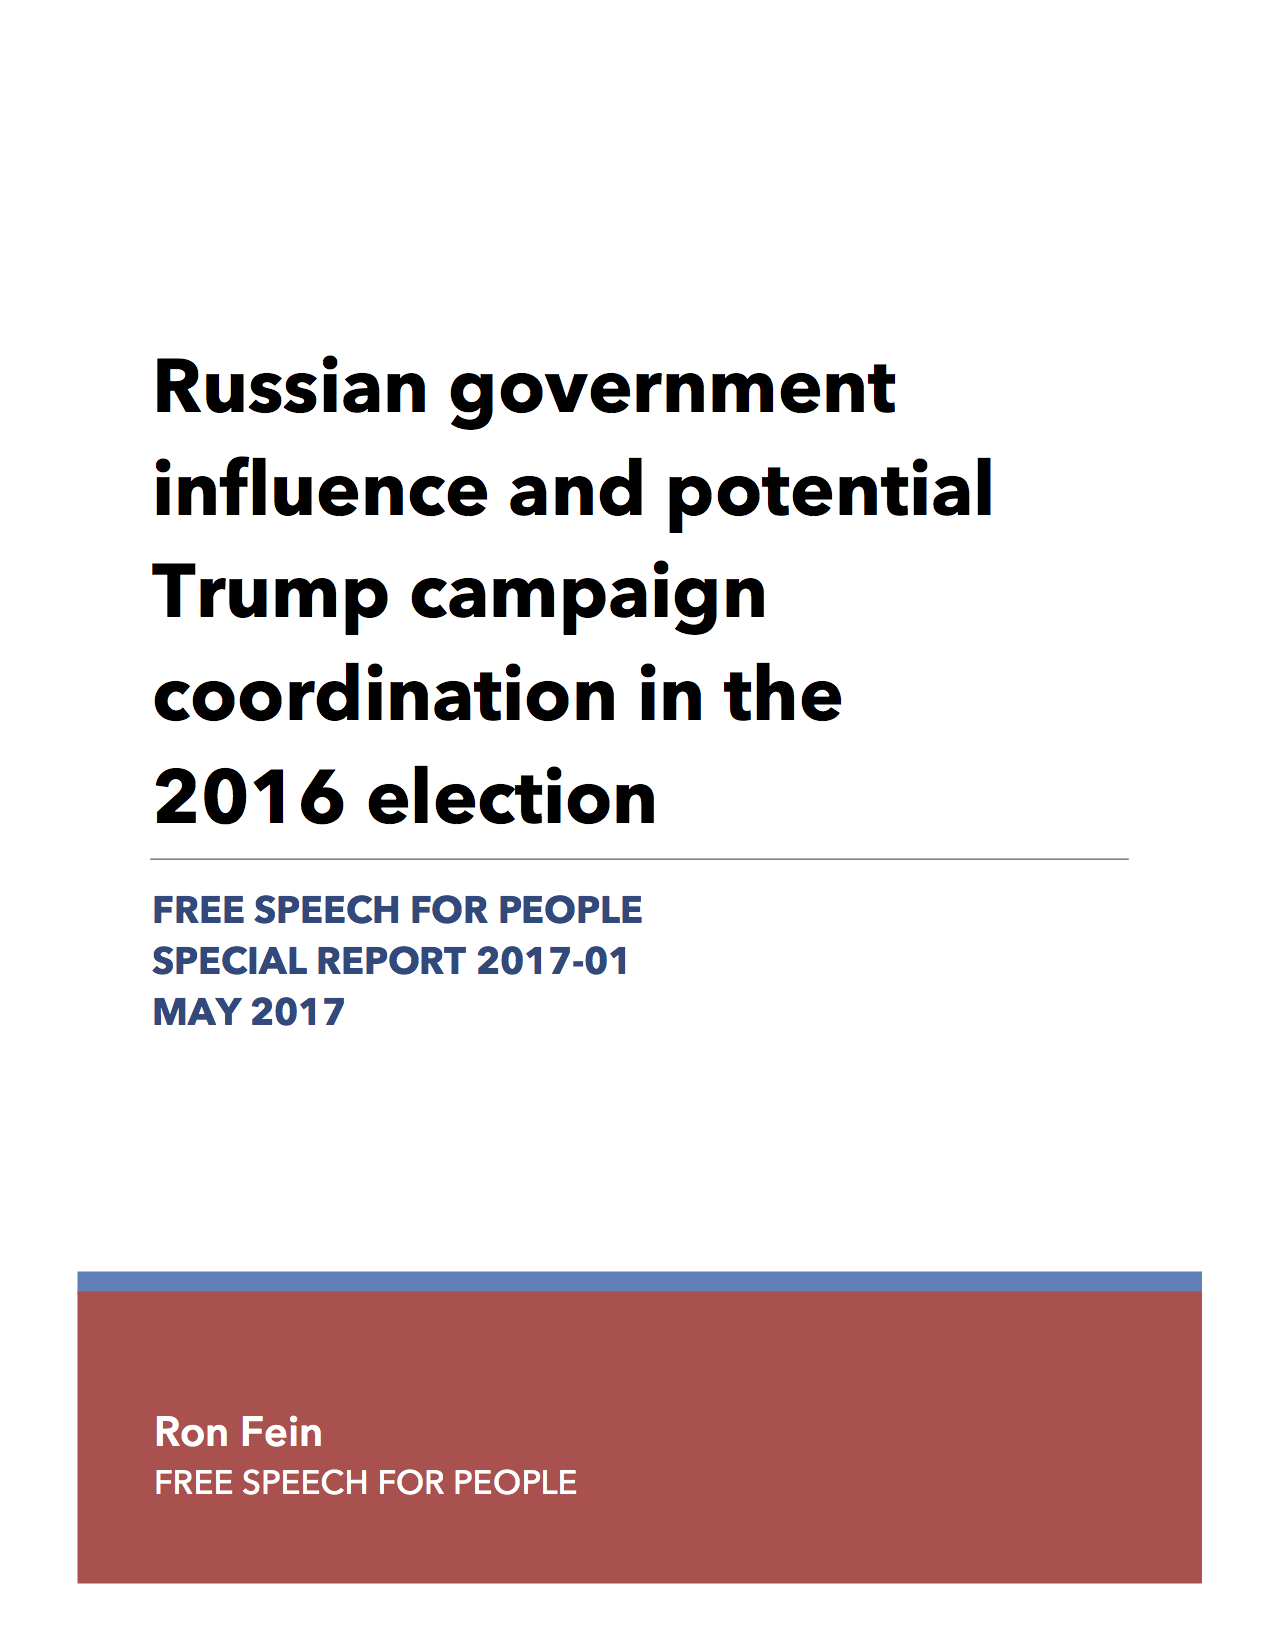 Our New Report: Russian Government Influence & Potential ...